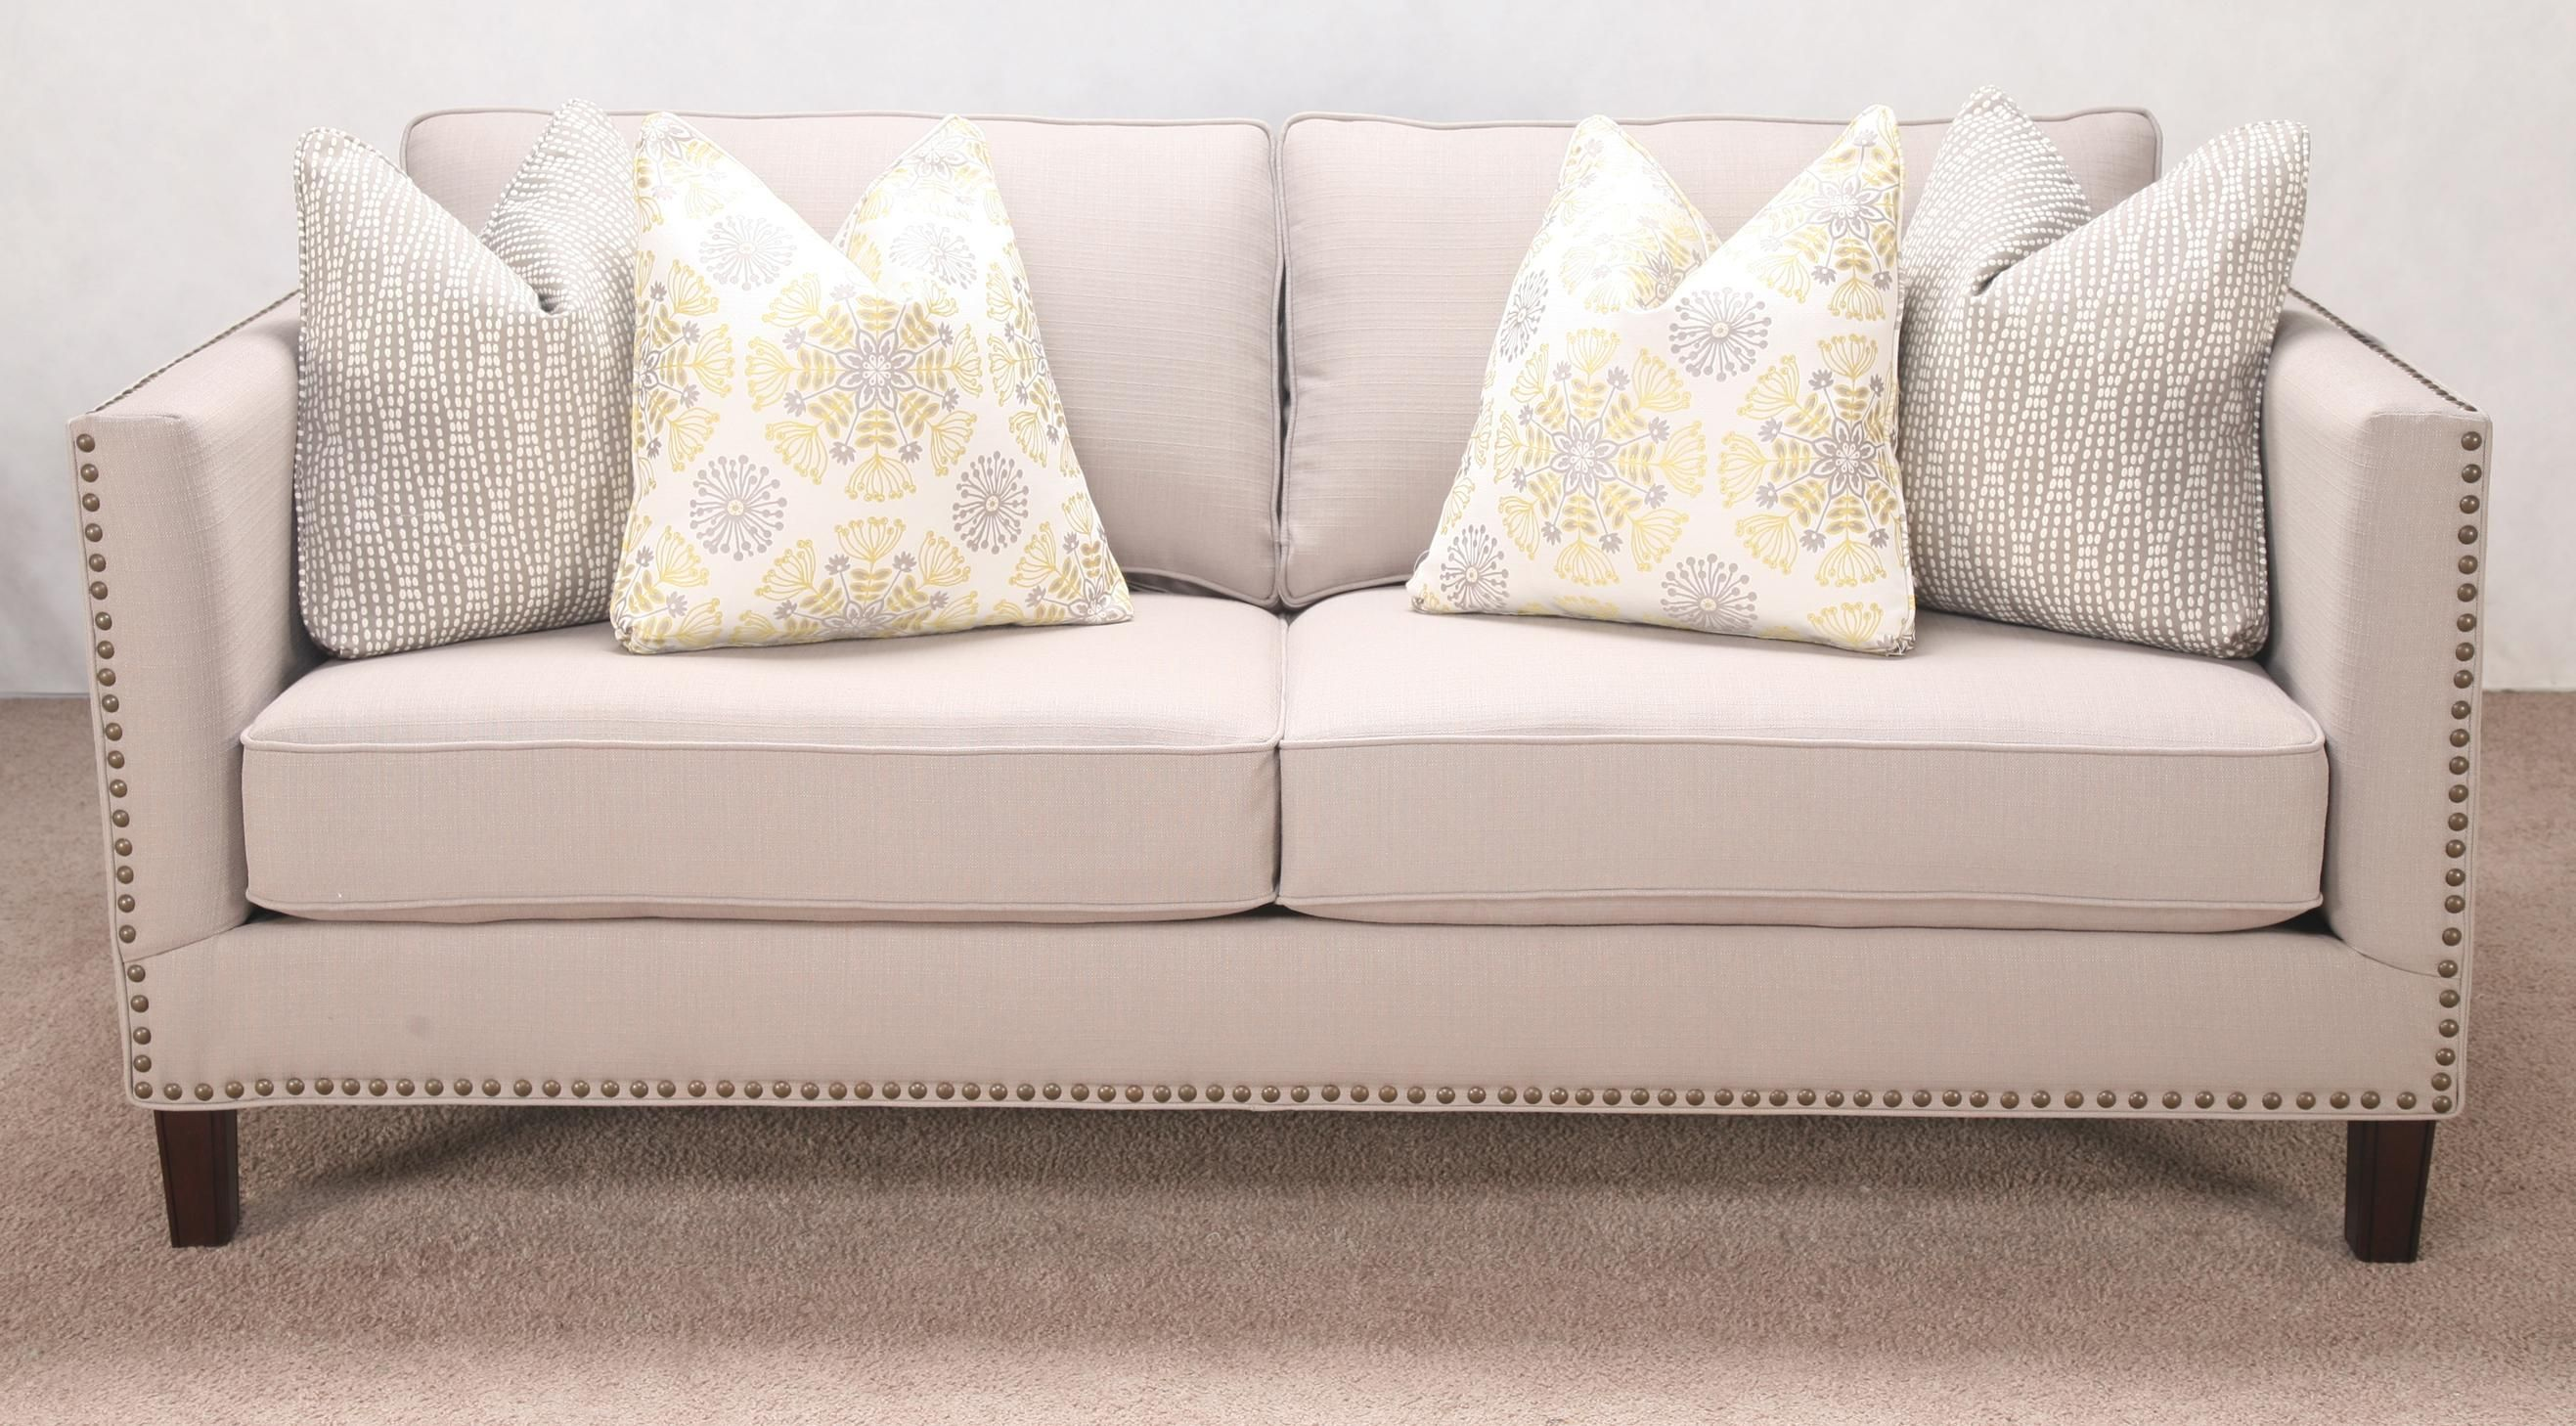 Nail Head Trim Sofa Flexsteel Living Room Fabric Sofa With